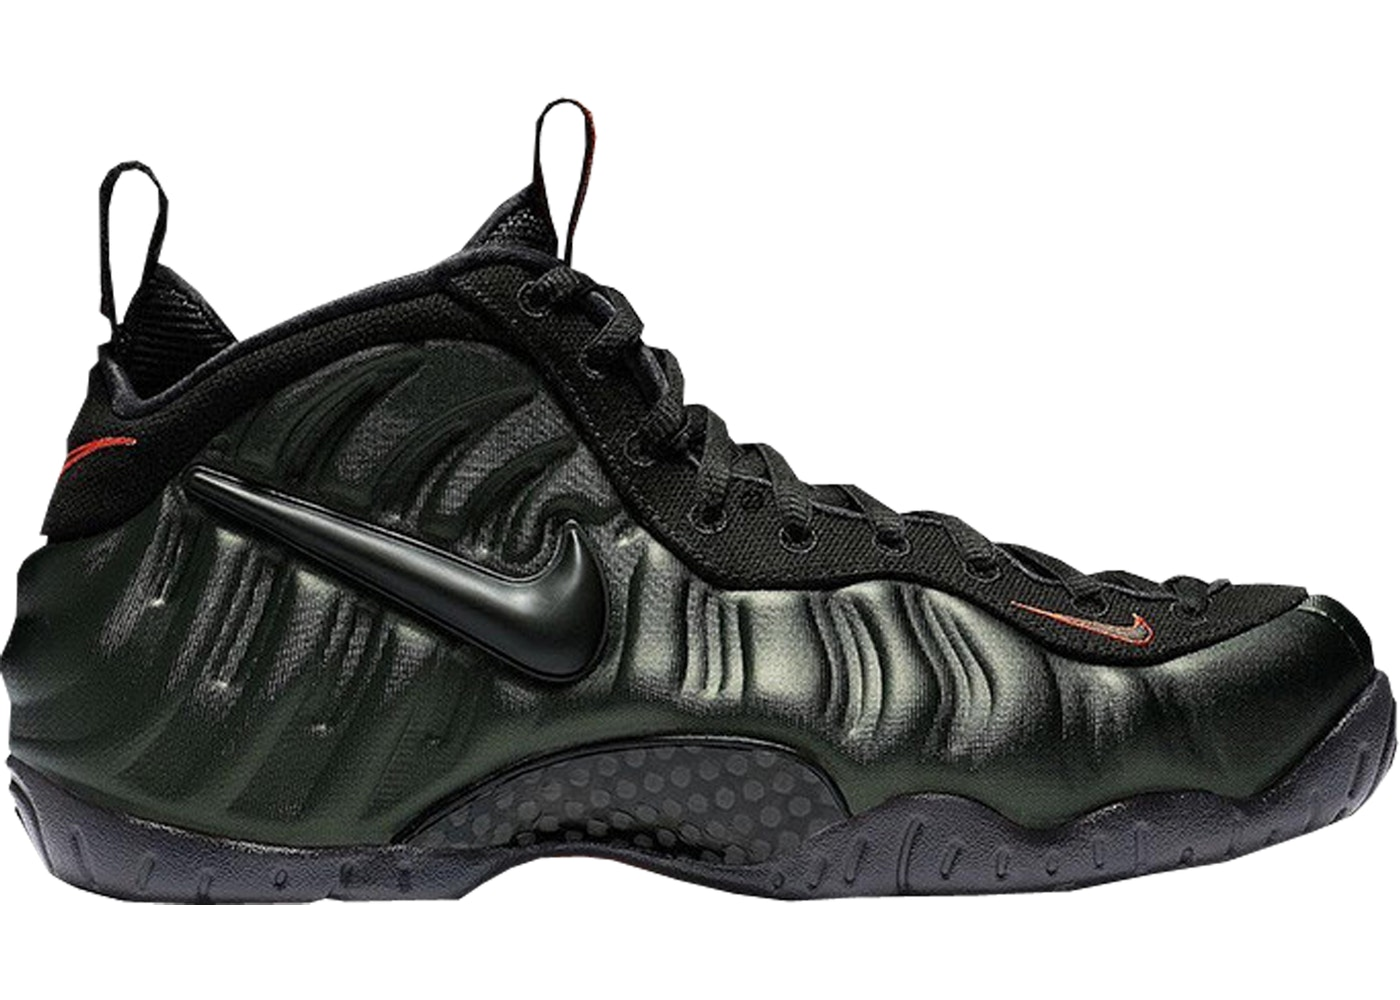 check out 72a93 1fc45 Air Foamposite Pro Sequoia - 624041-304